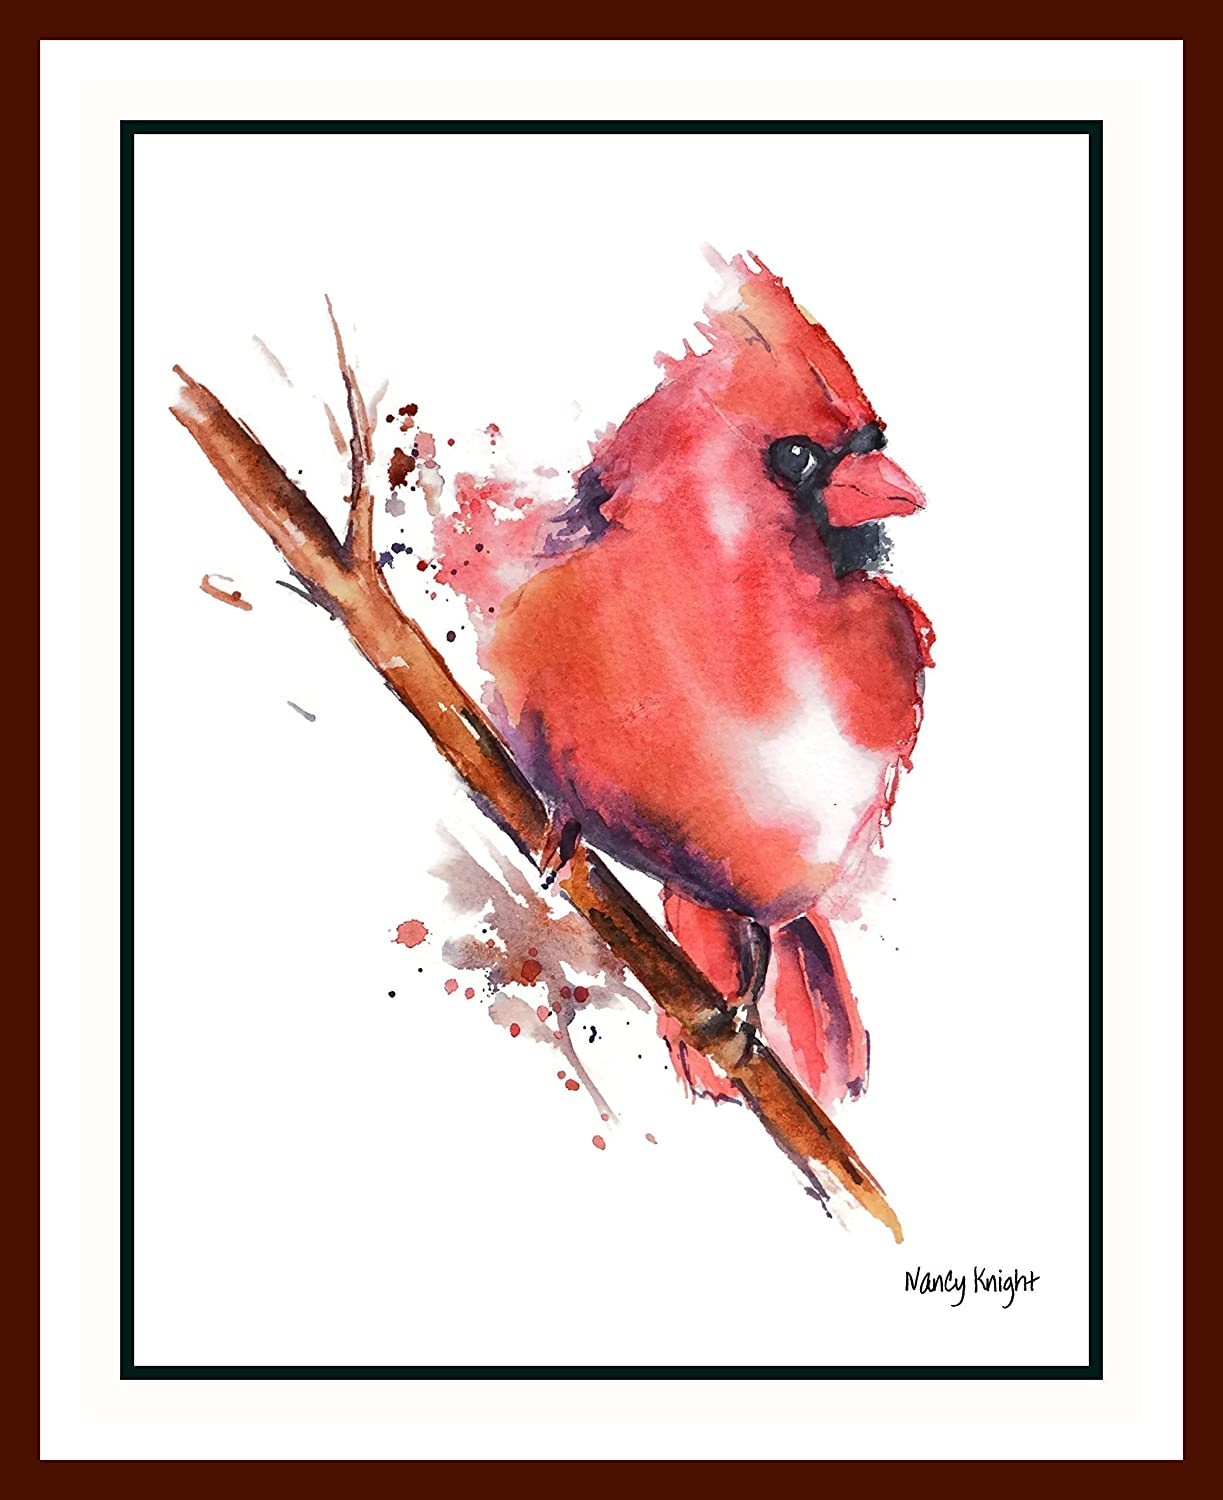 Watercolor artist magazine customer service - Amazon Com Cardinal Watercolor Art Print By Nancy Knight Watercolor Painting Bird Watercolor Bird Art Print Cardinal Painting Bird Wall Art